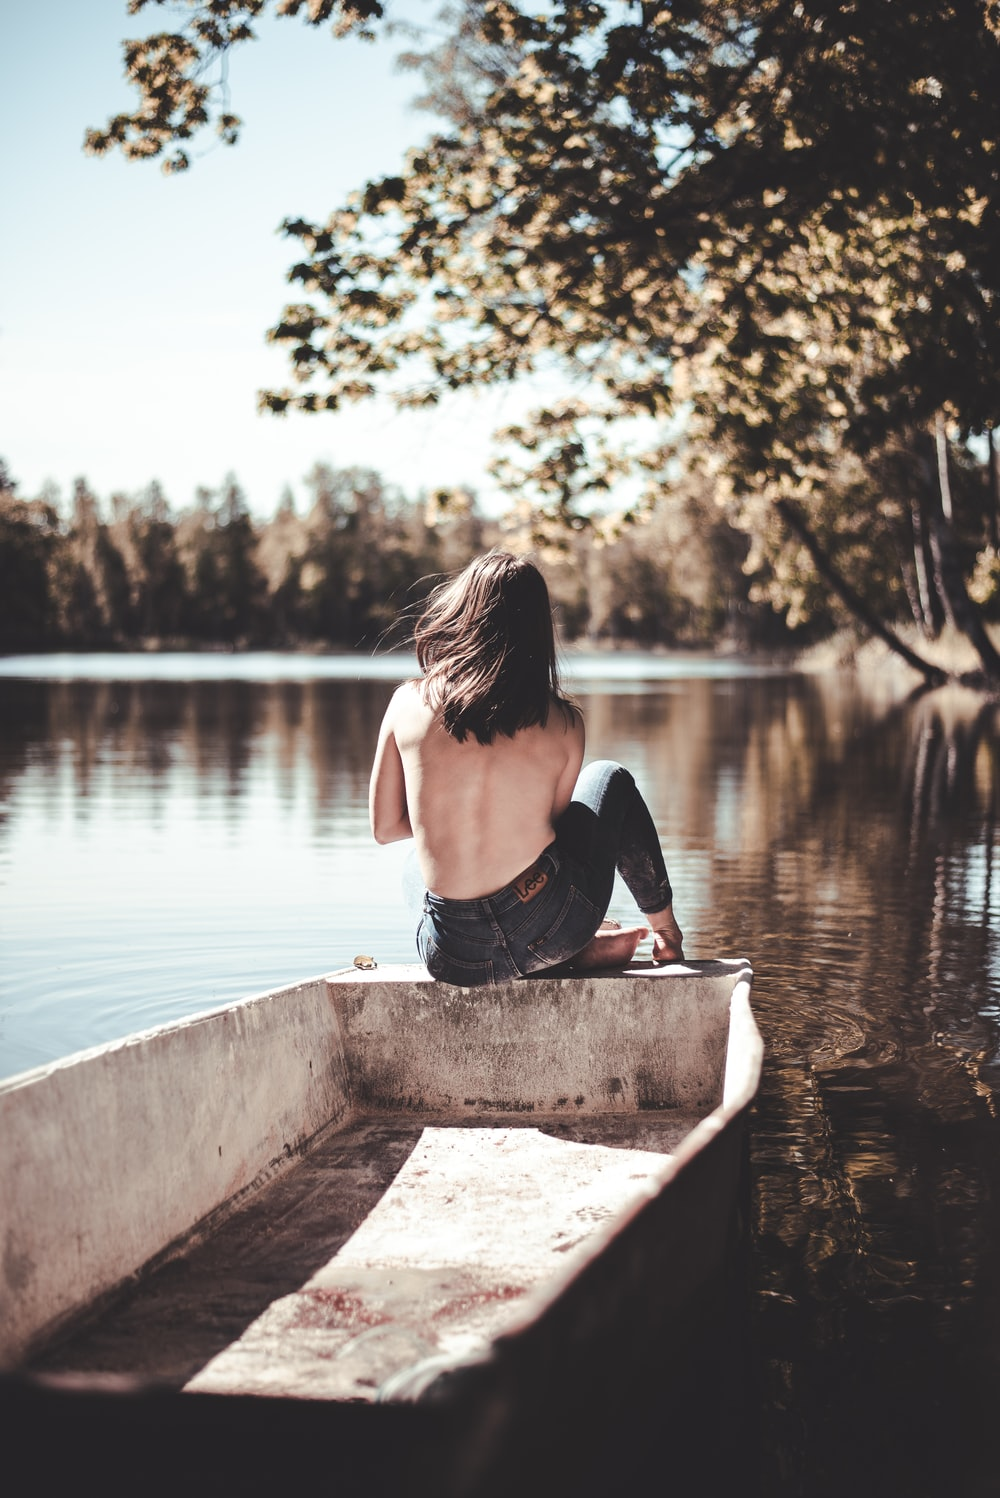 woman in black tank top sitting on concrete dock during daytime